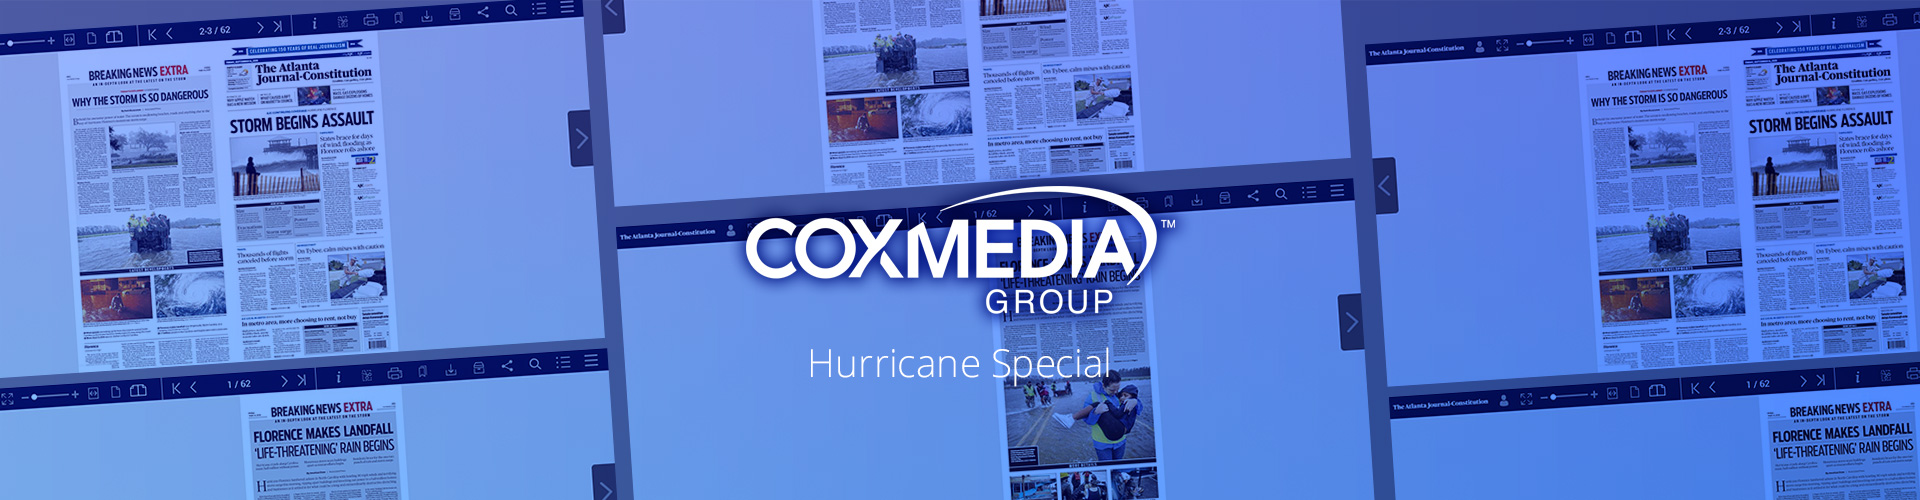 Cox Media Group Cover Hurricane Florence